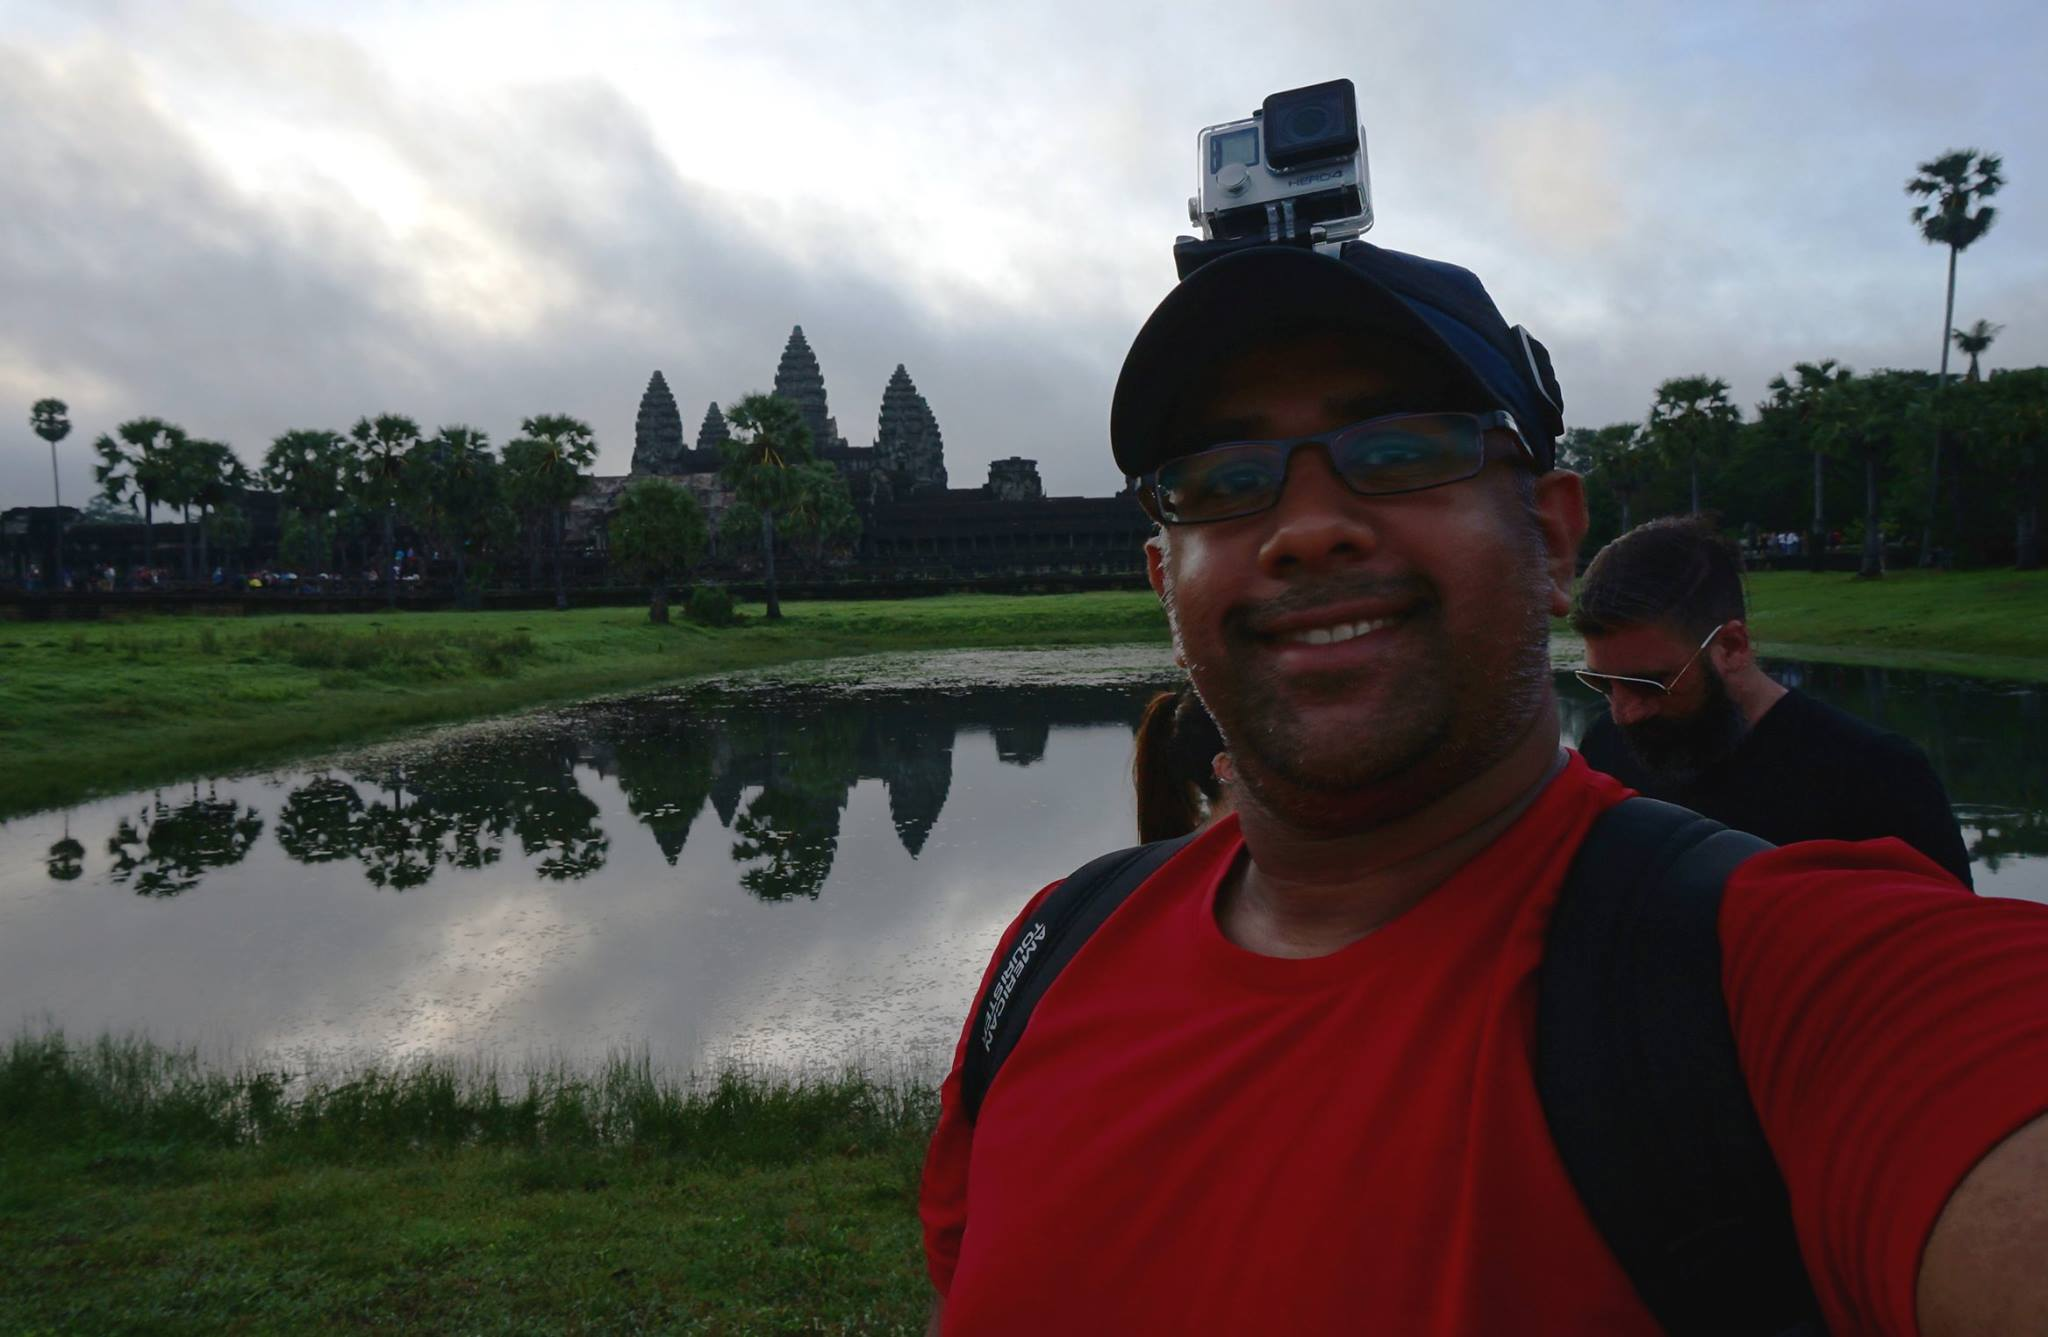 Nikhilesh Murthy in Cambodia, trying to cover a sunrise at Angkor Vat